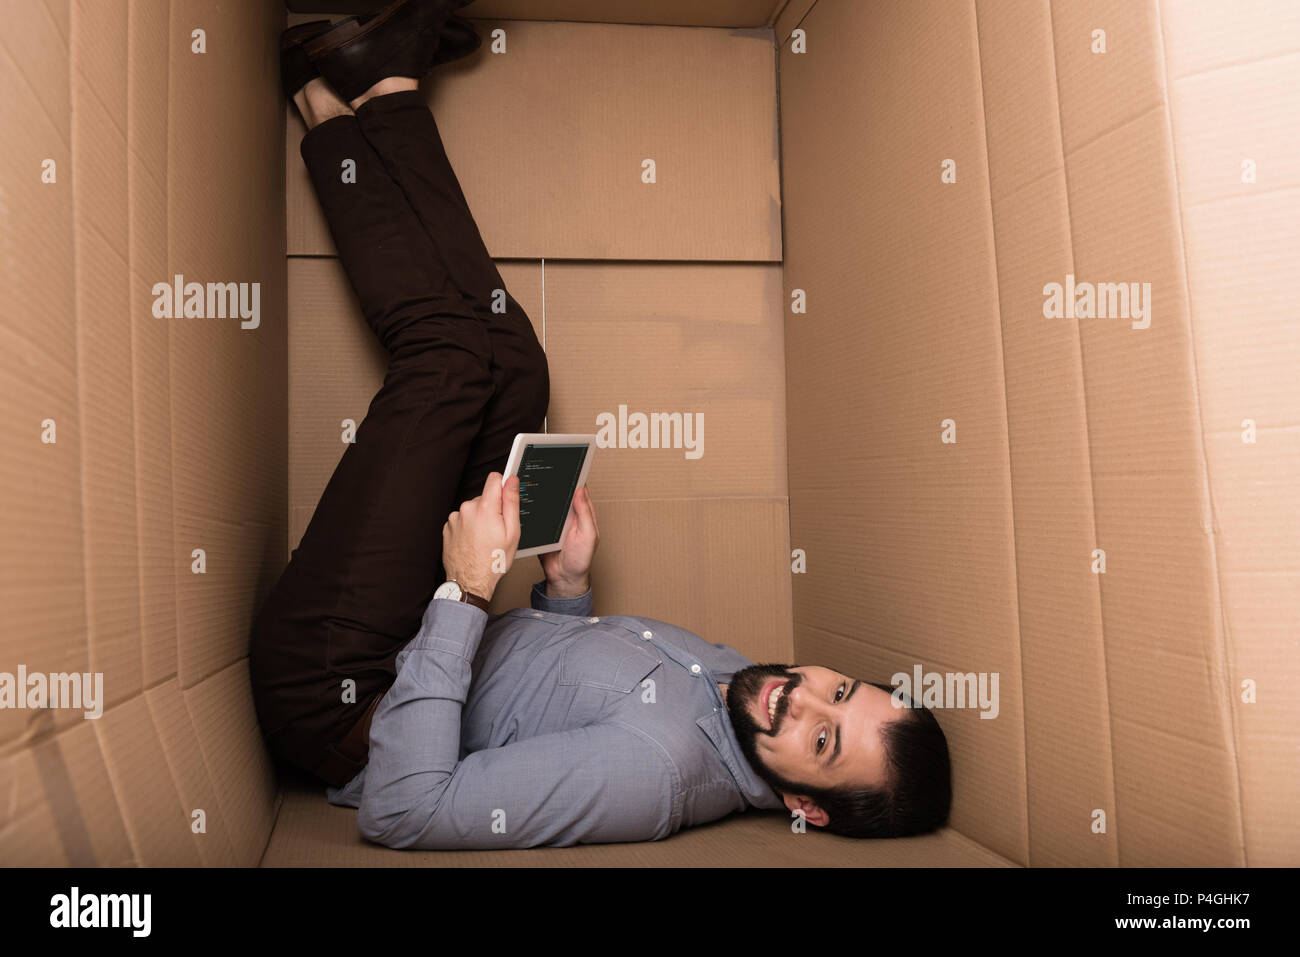 introvert using digital tablet with html code in cardboard box - Stock Image